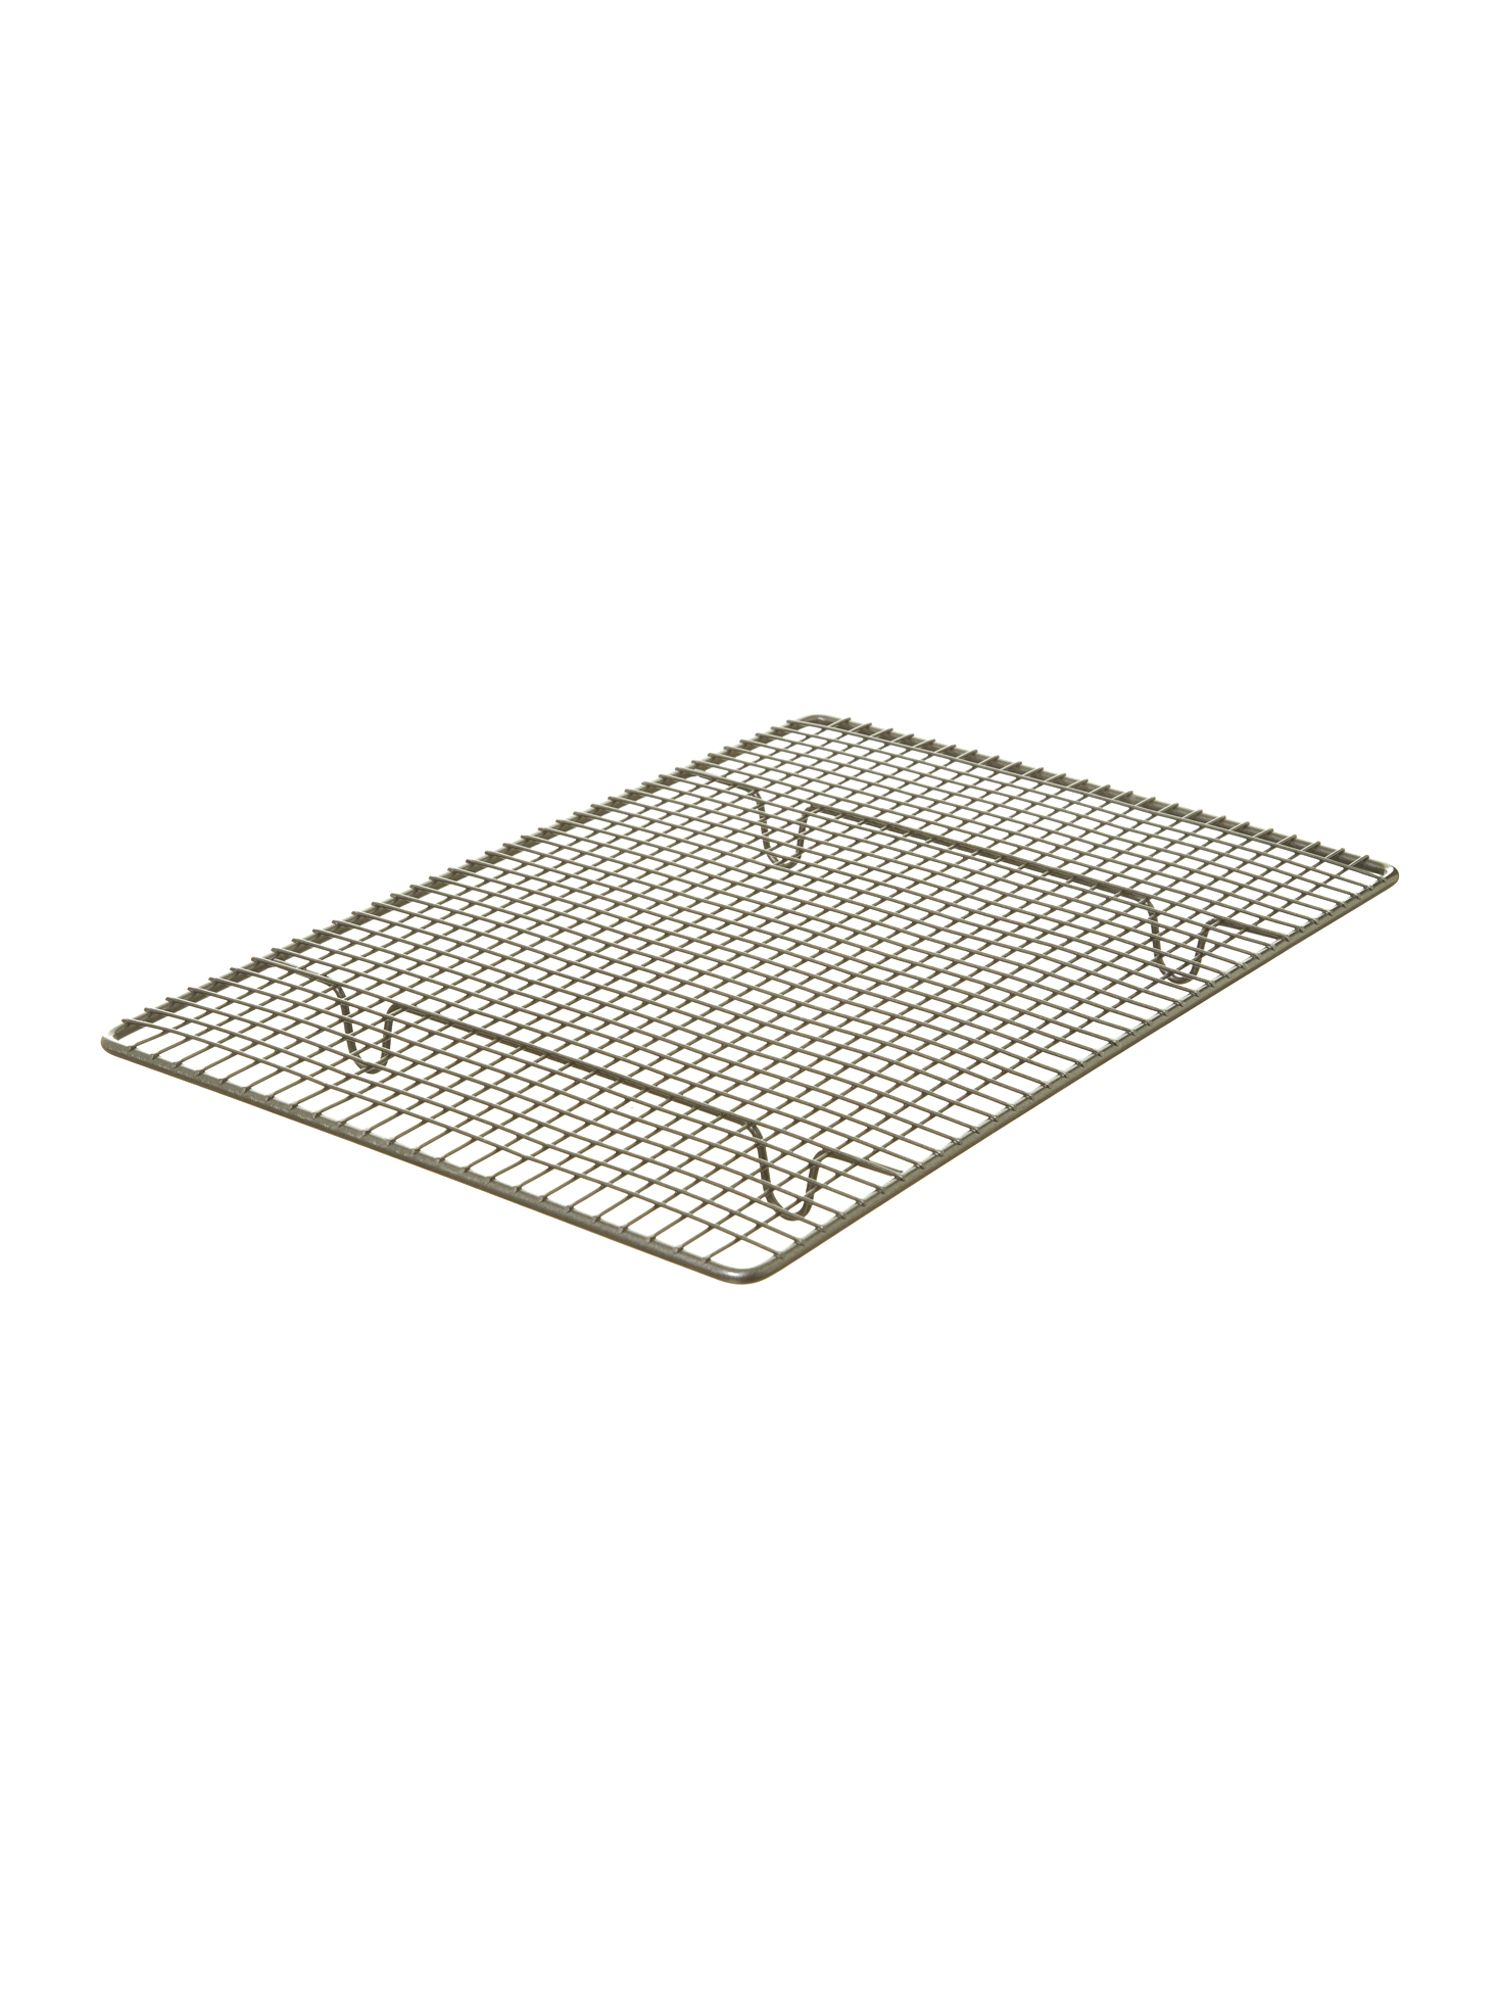 Rectangular cooling rack, 33cm